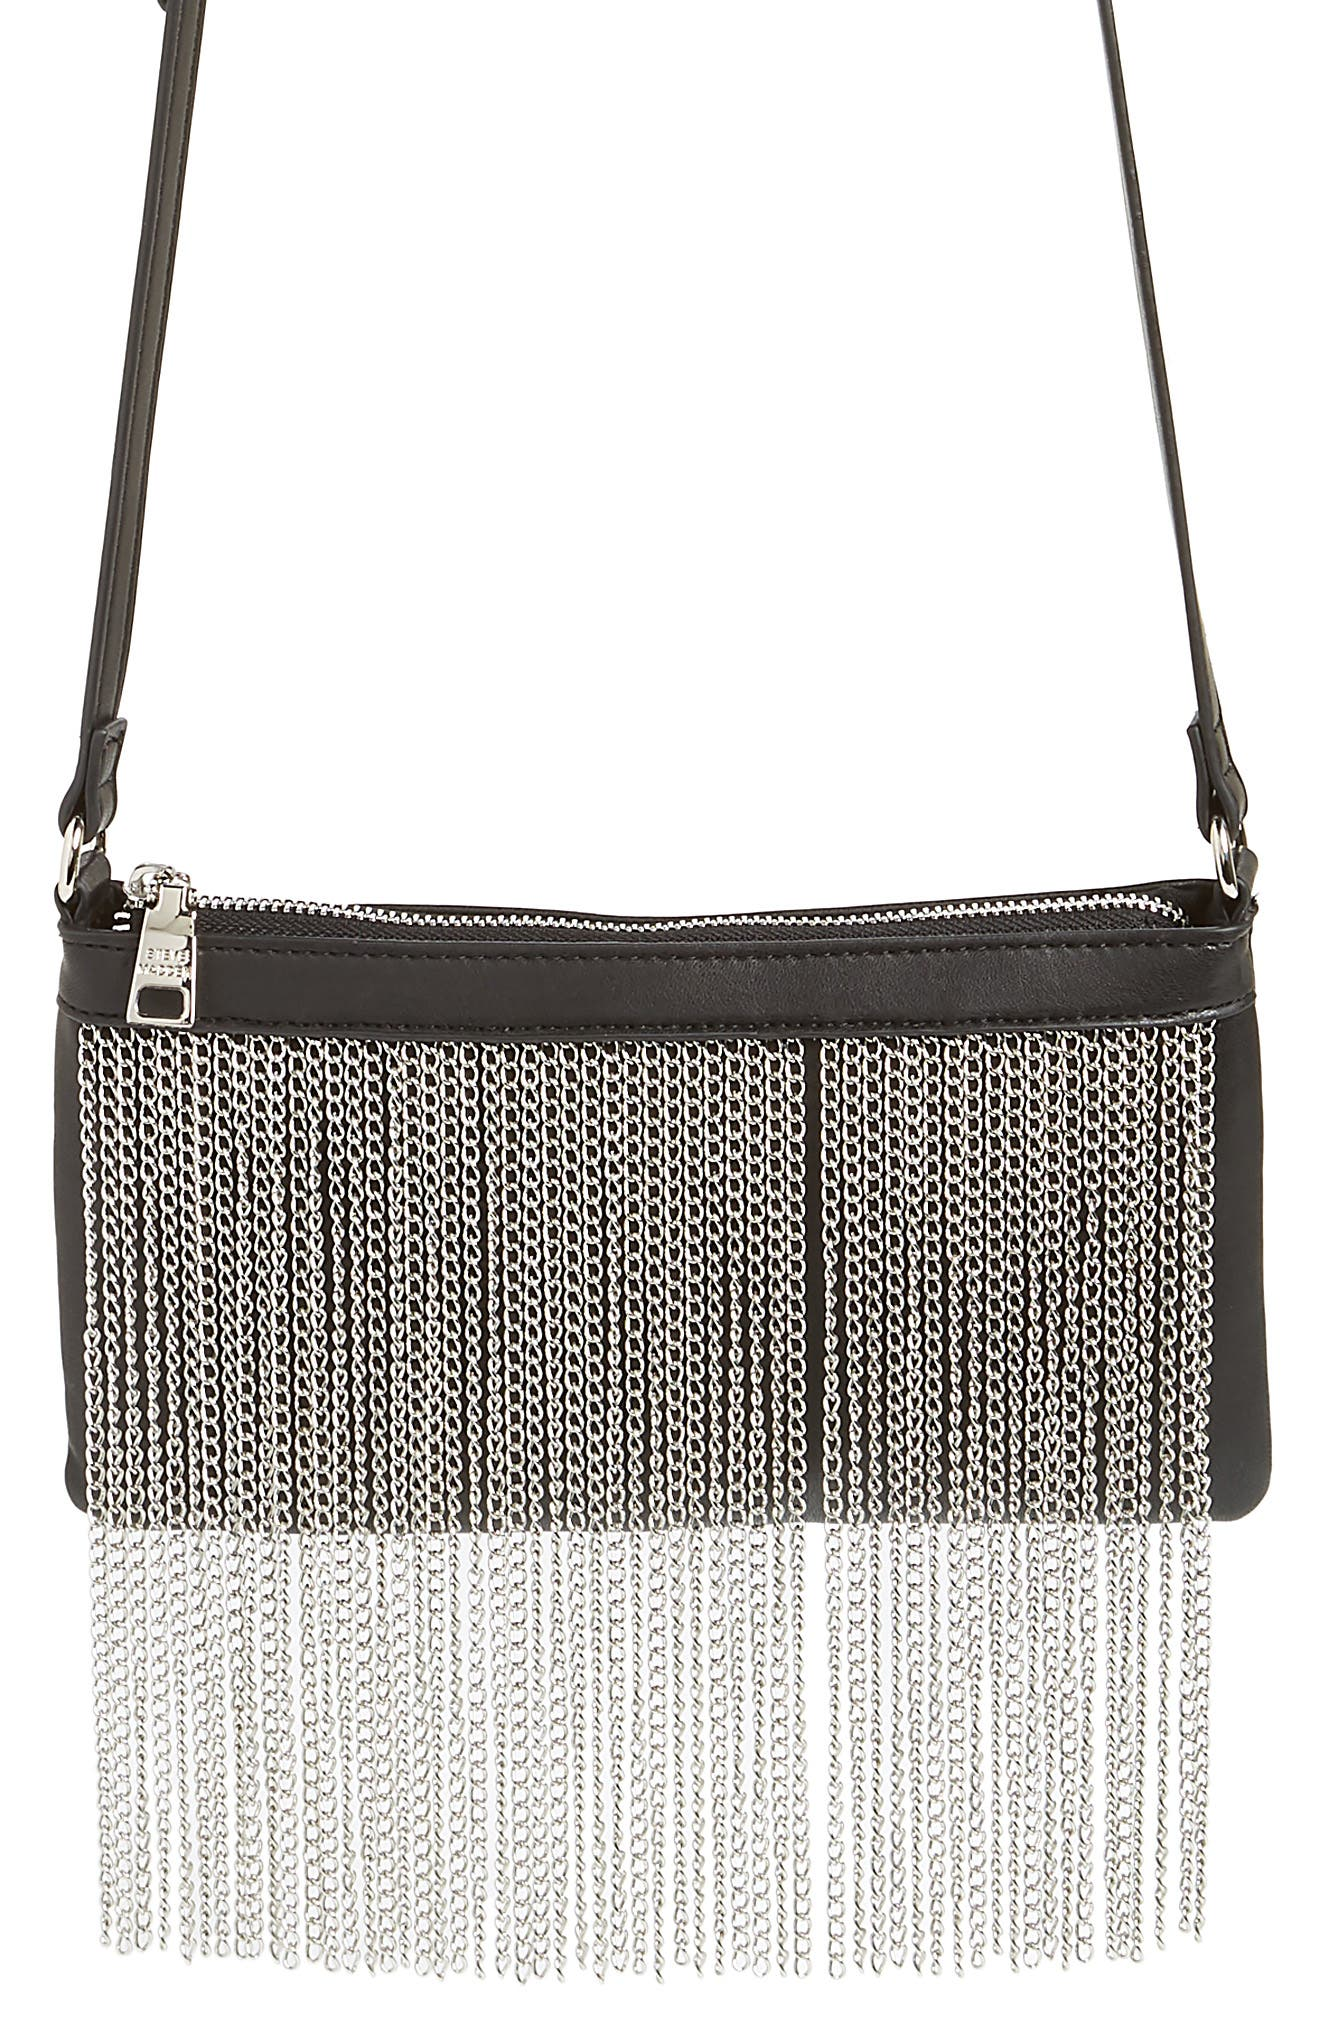 Chain Fringe Crossbody Bag,                             Main thumbnail 1, color,                             Black